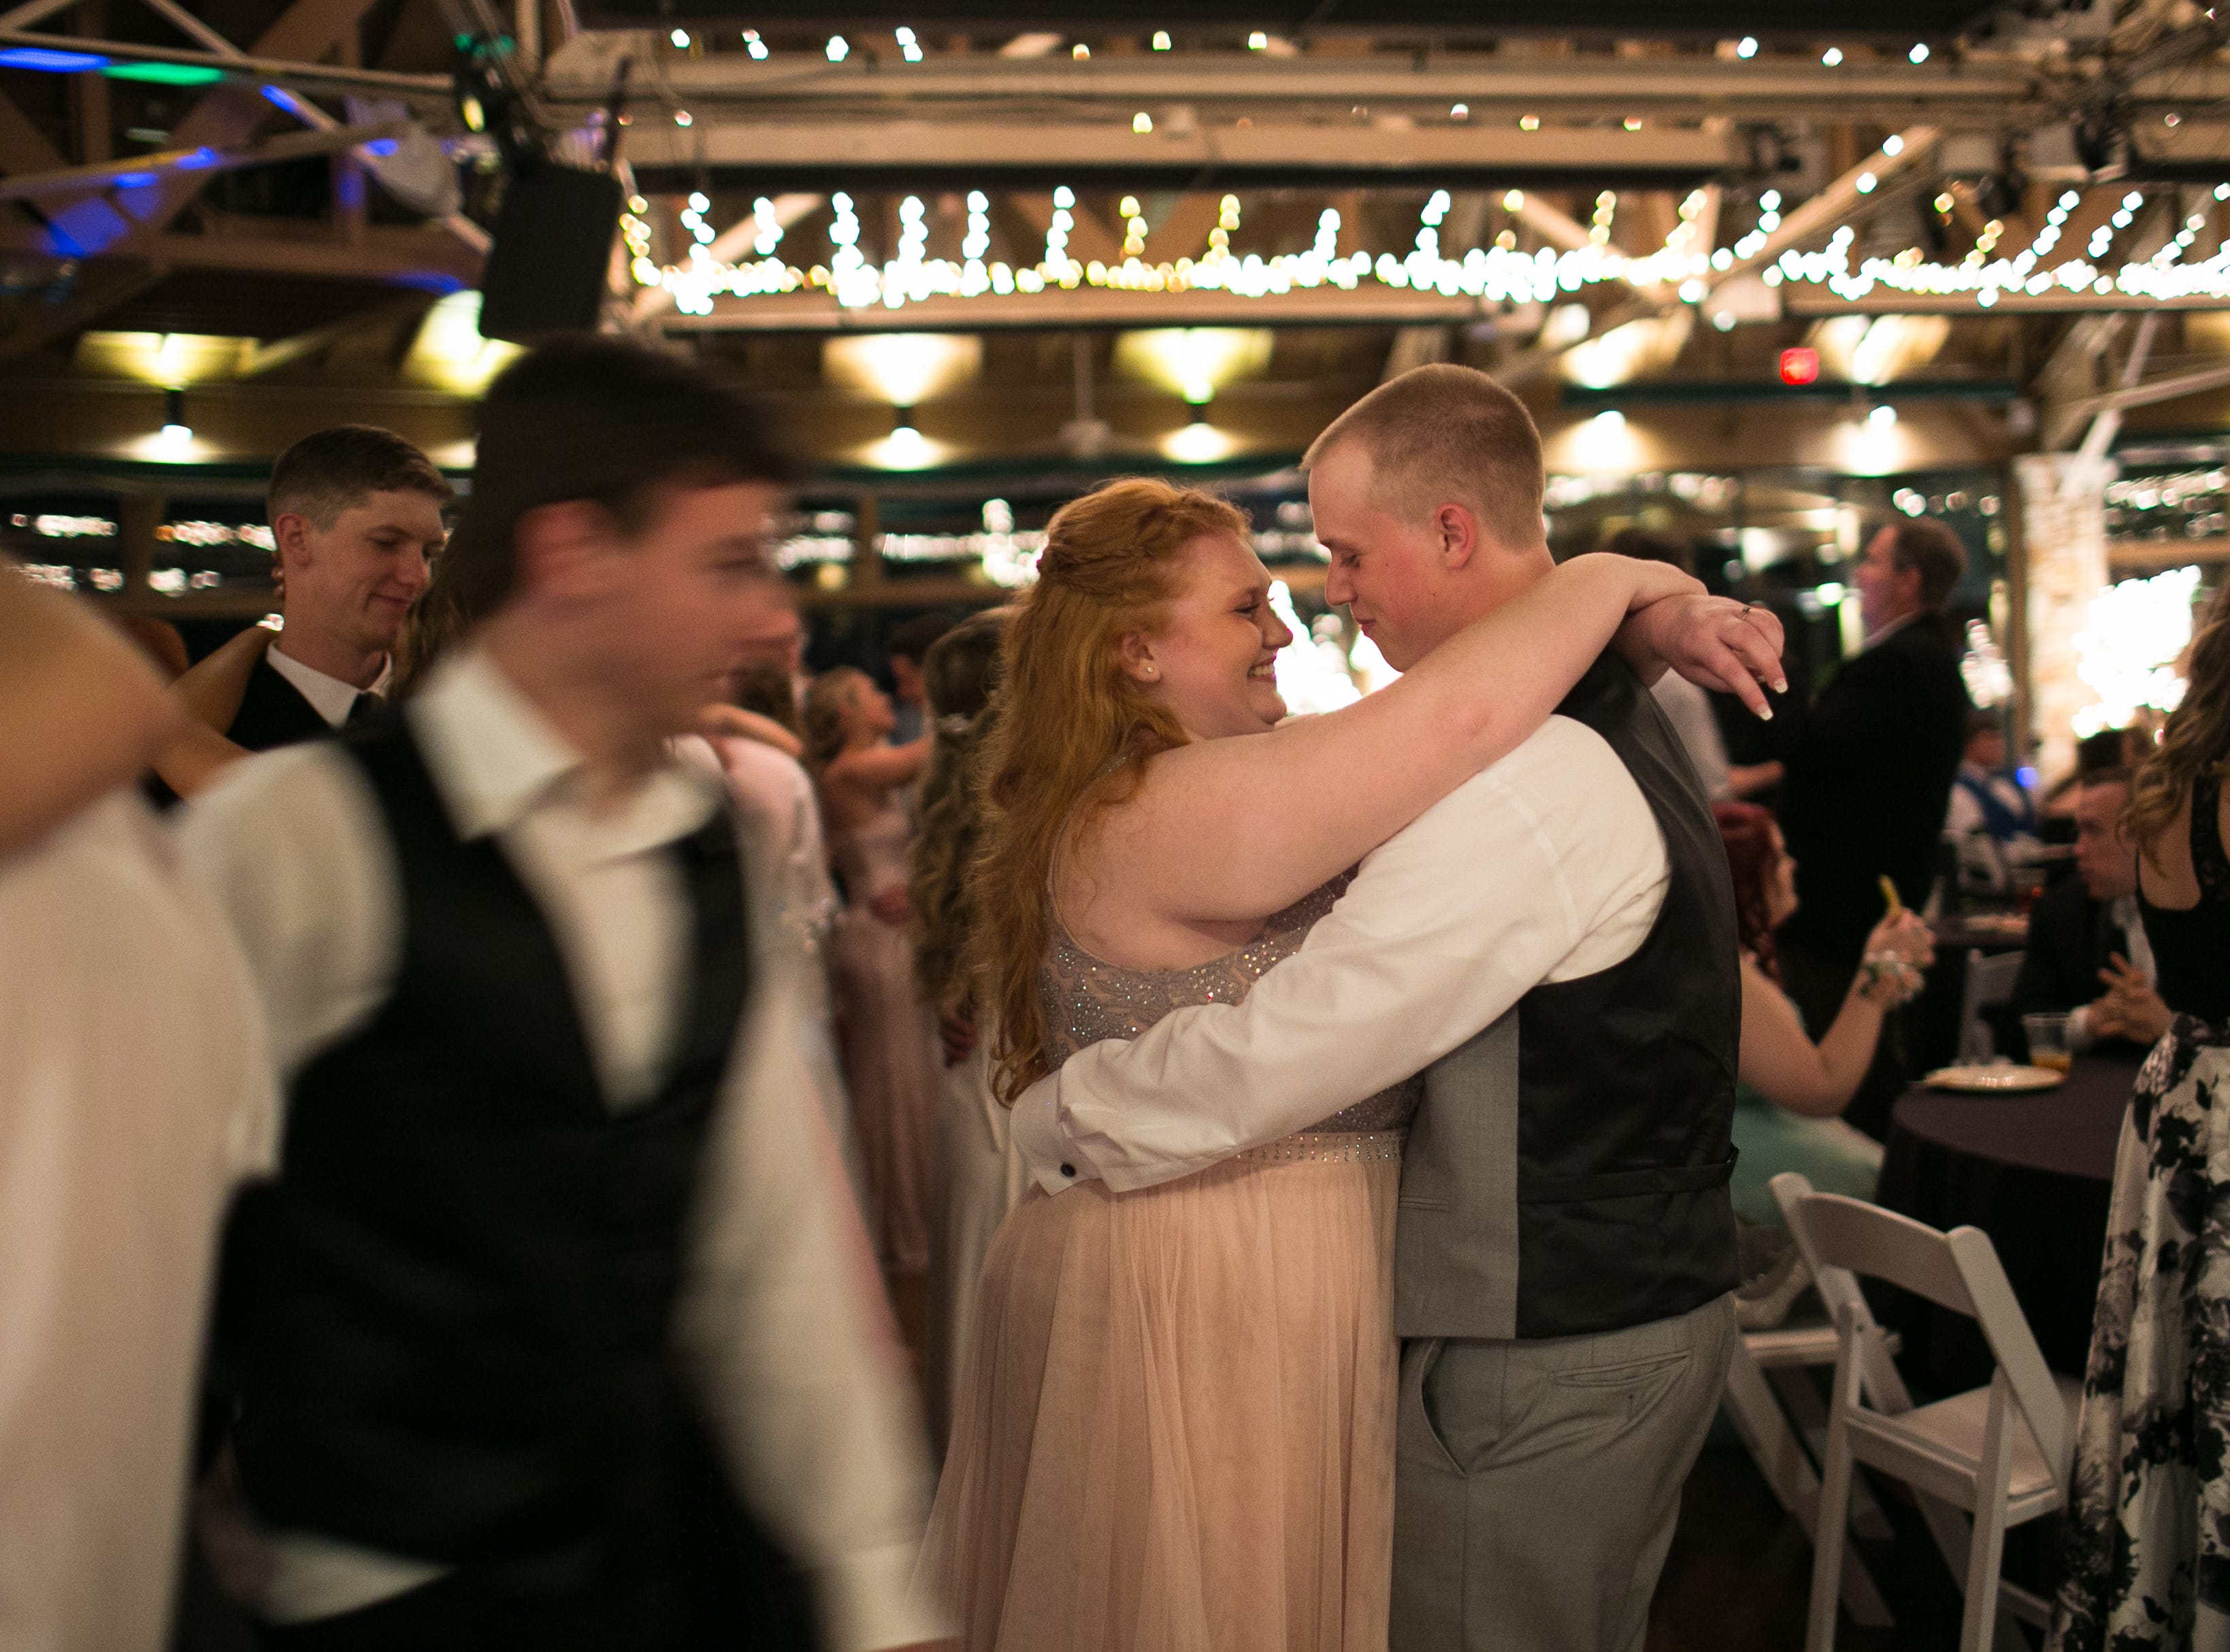 Maddie Honeycutt and Ethan Meadows dance as Madison High School celebrates its prom on May 4, 2019, at the Crest Center Pavilion.